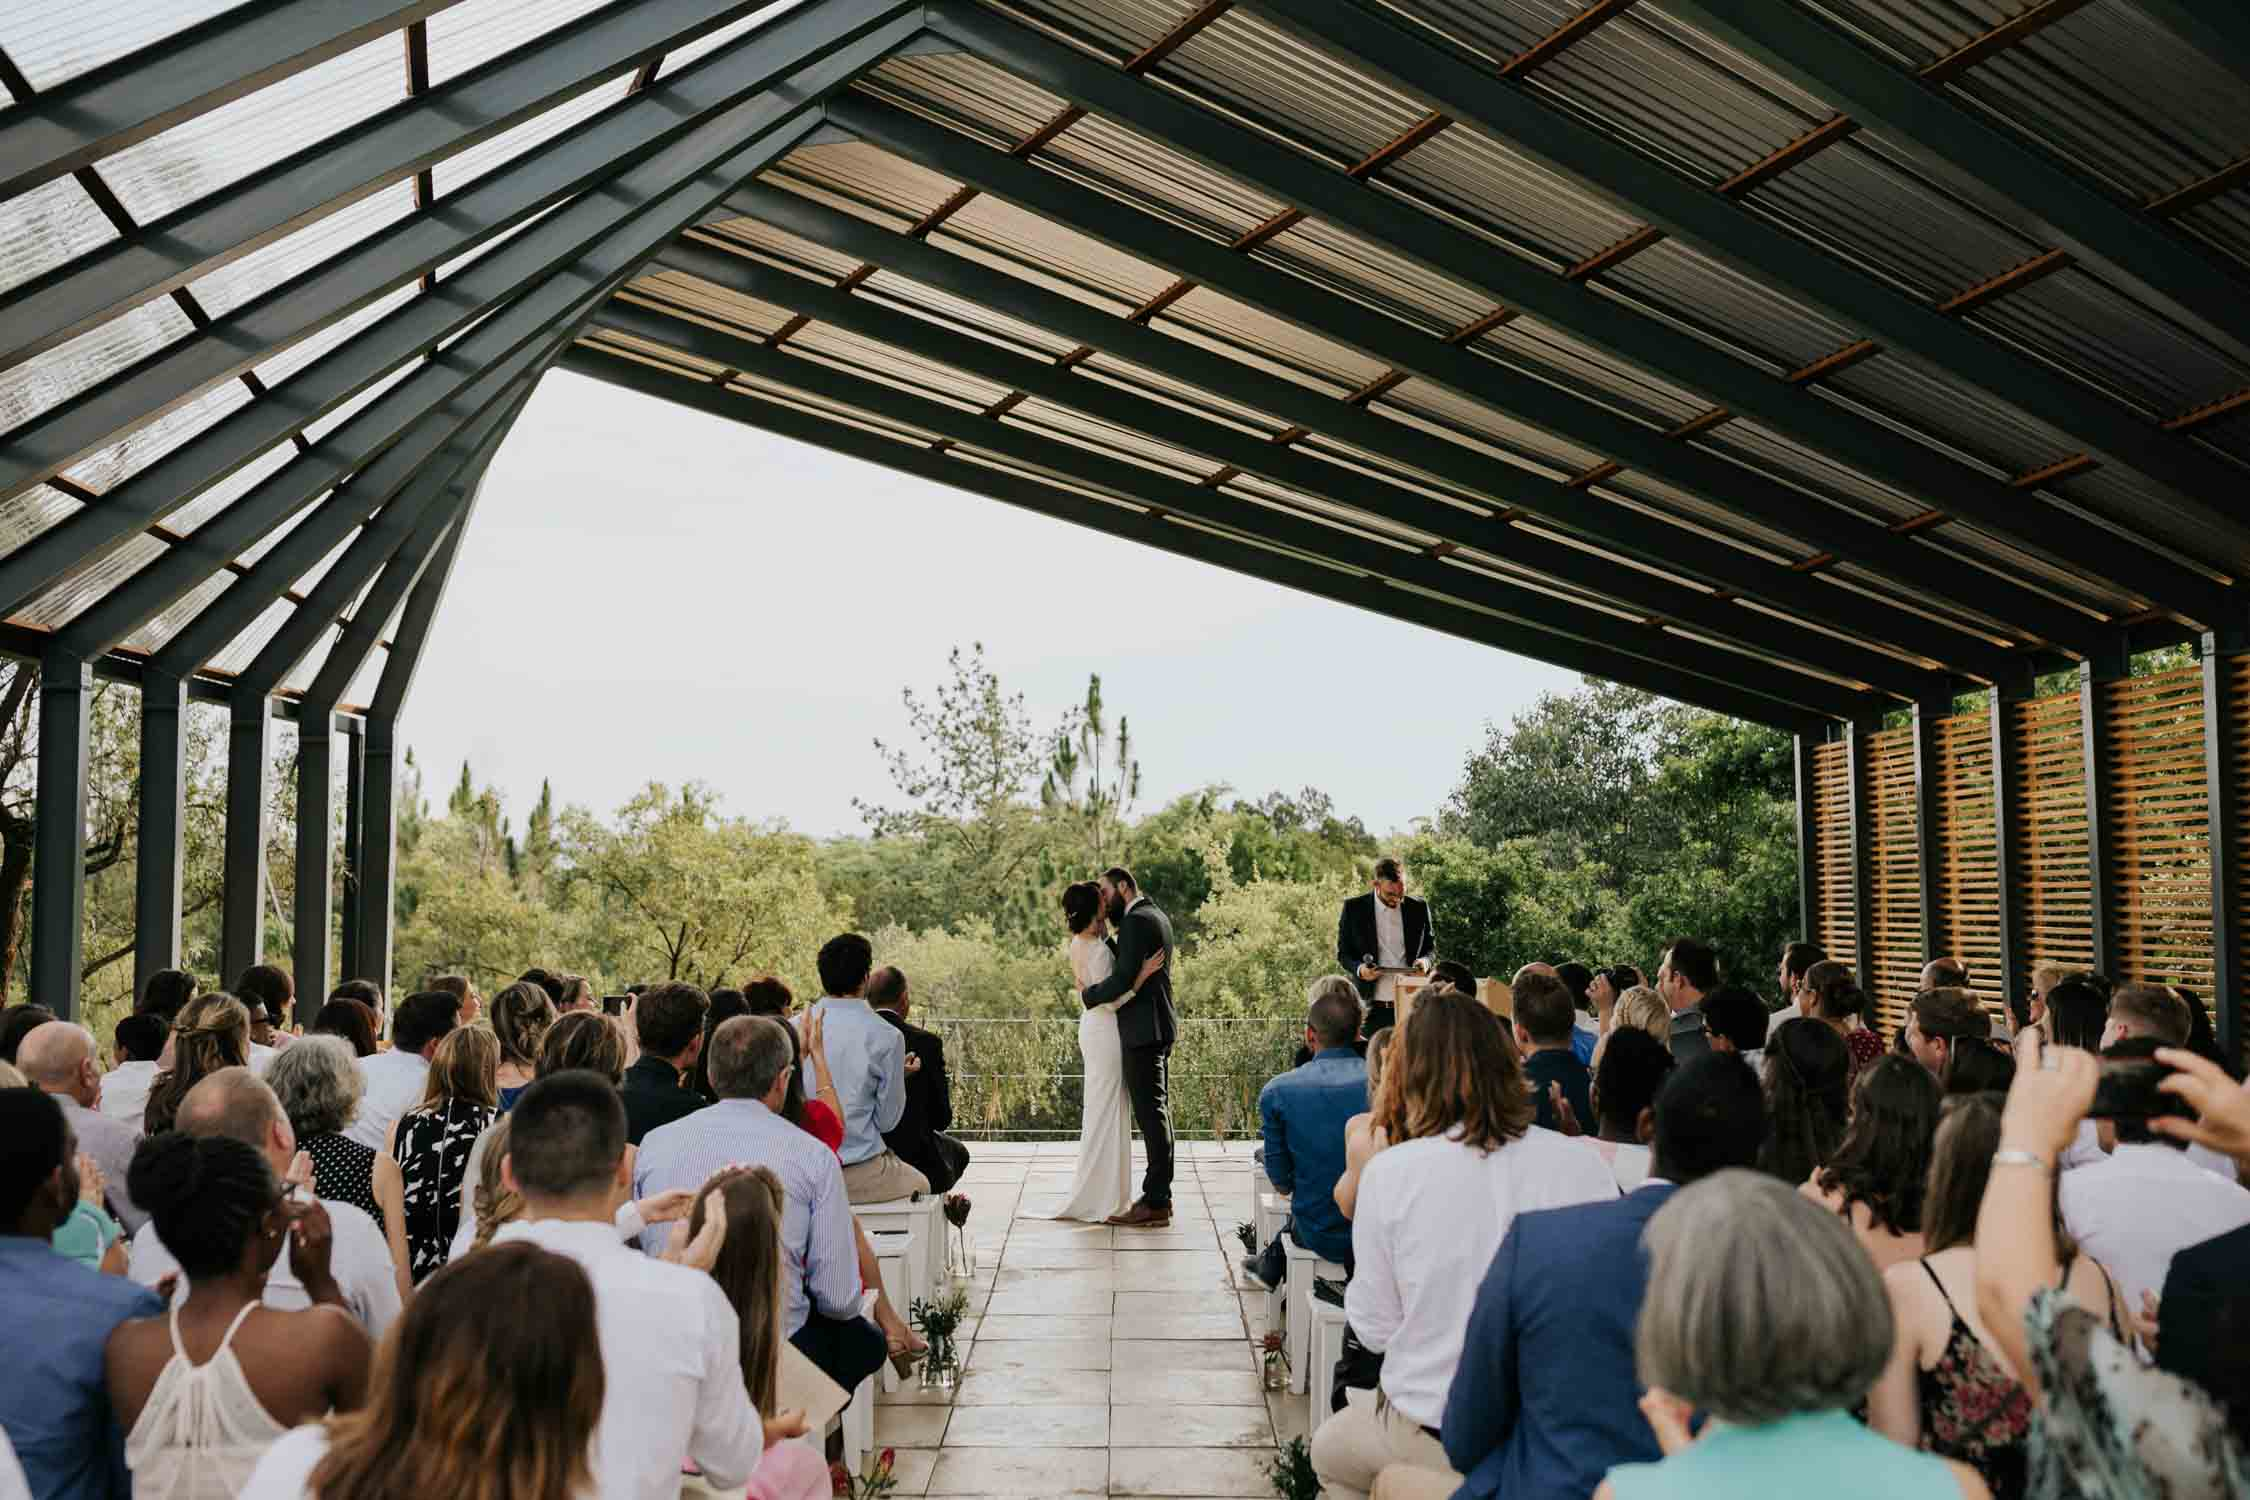 Epic first kiss photo at The Greenhouse Cafe Wedding Venue at Rosemary Hill Farm, Pretoria